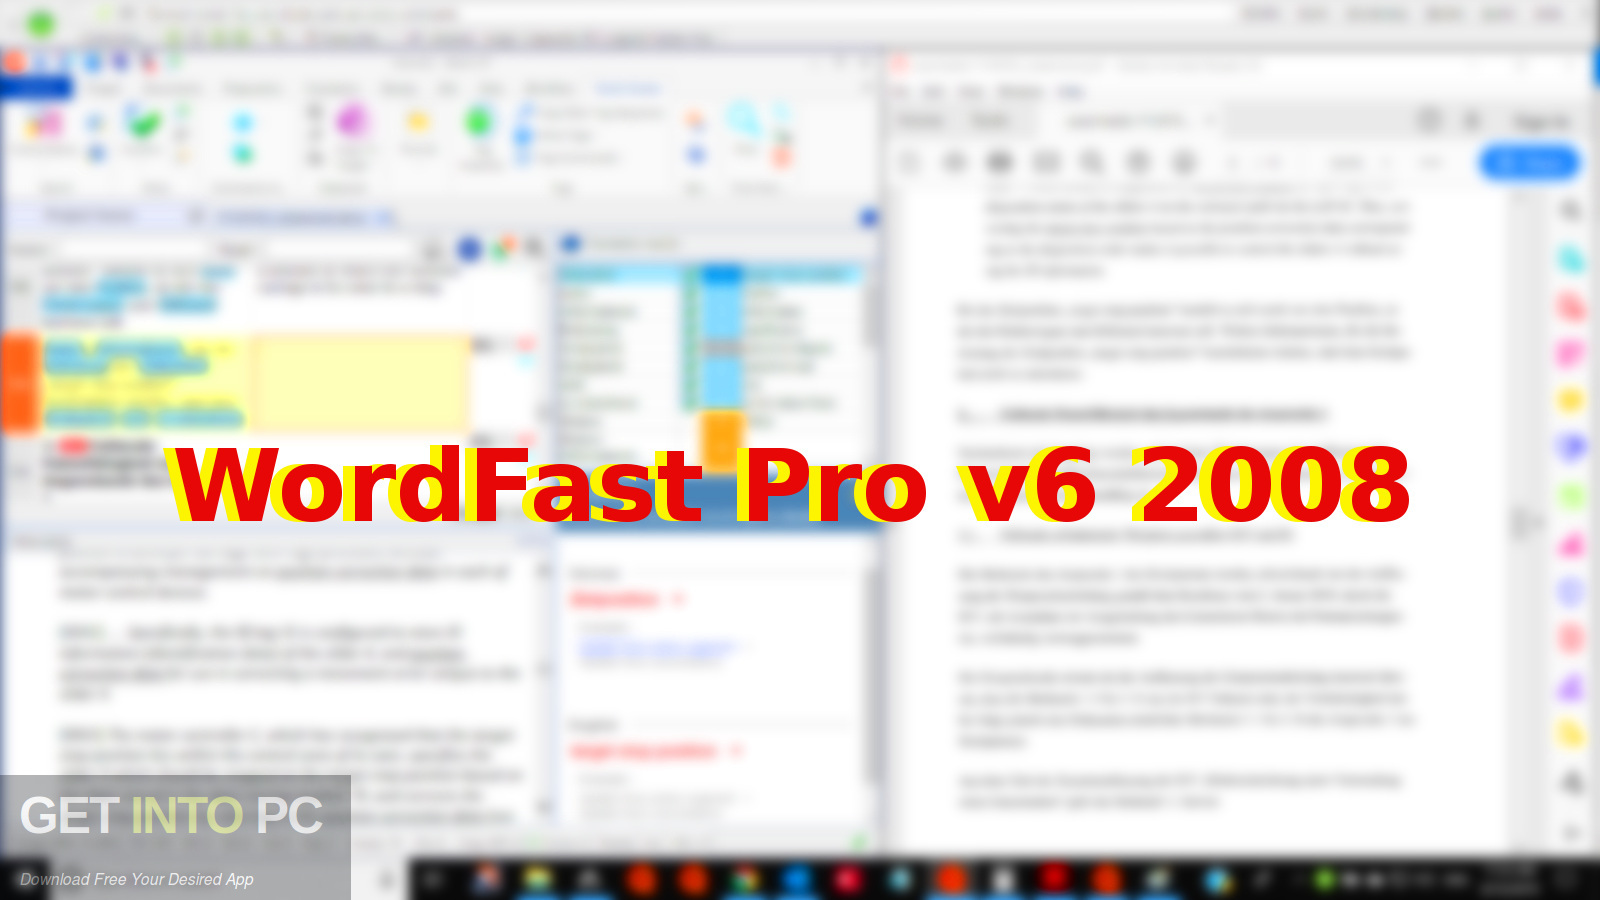 WordFast Pro v6 2008 Free Download-GetintoPC.com